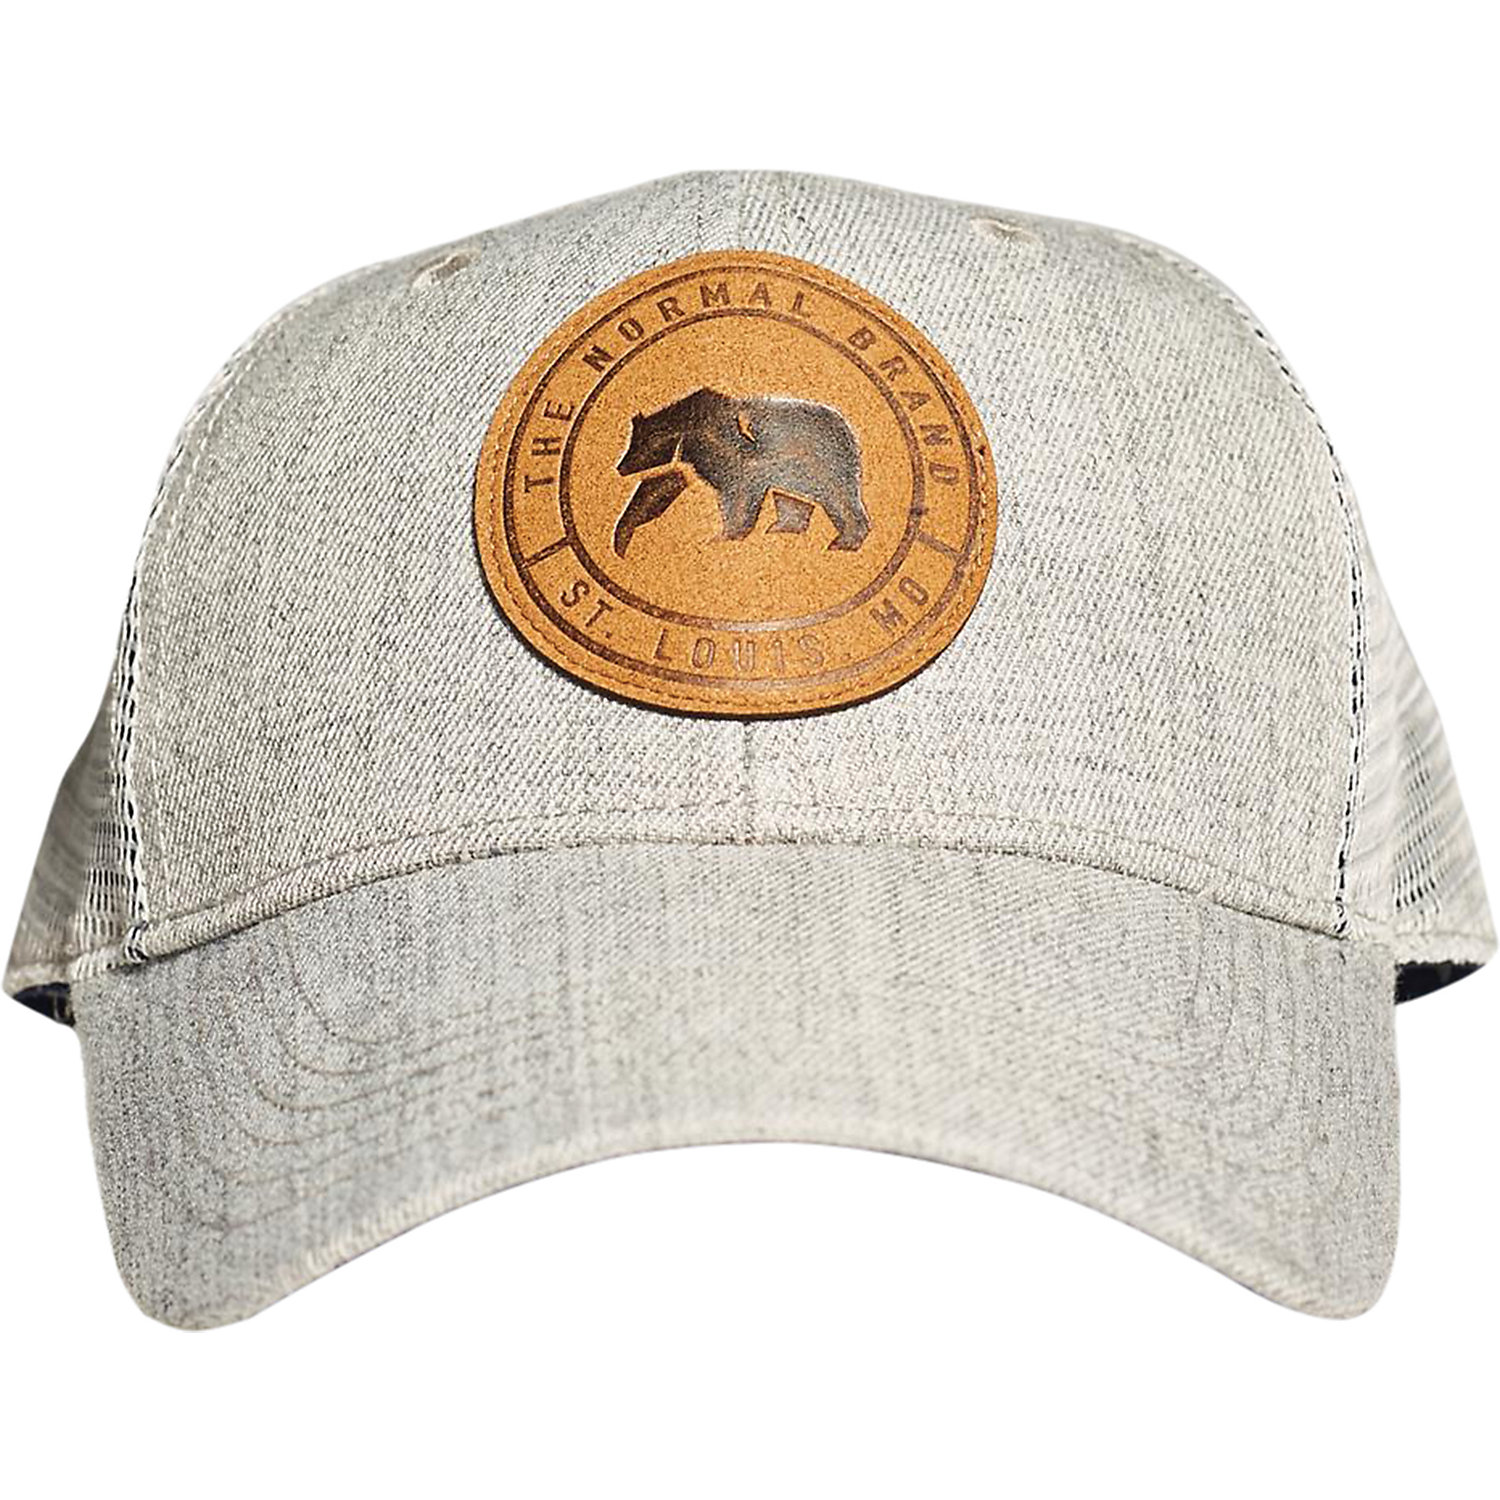 The Normal Brand Leather Patch Trucker - Moosejaw 6cd8a3f766f